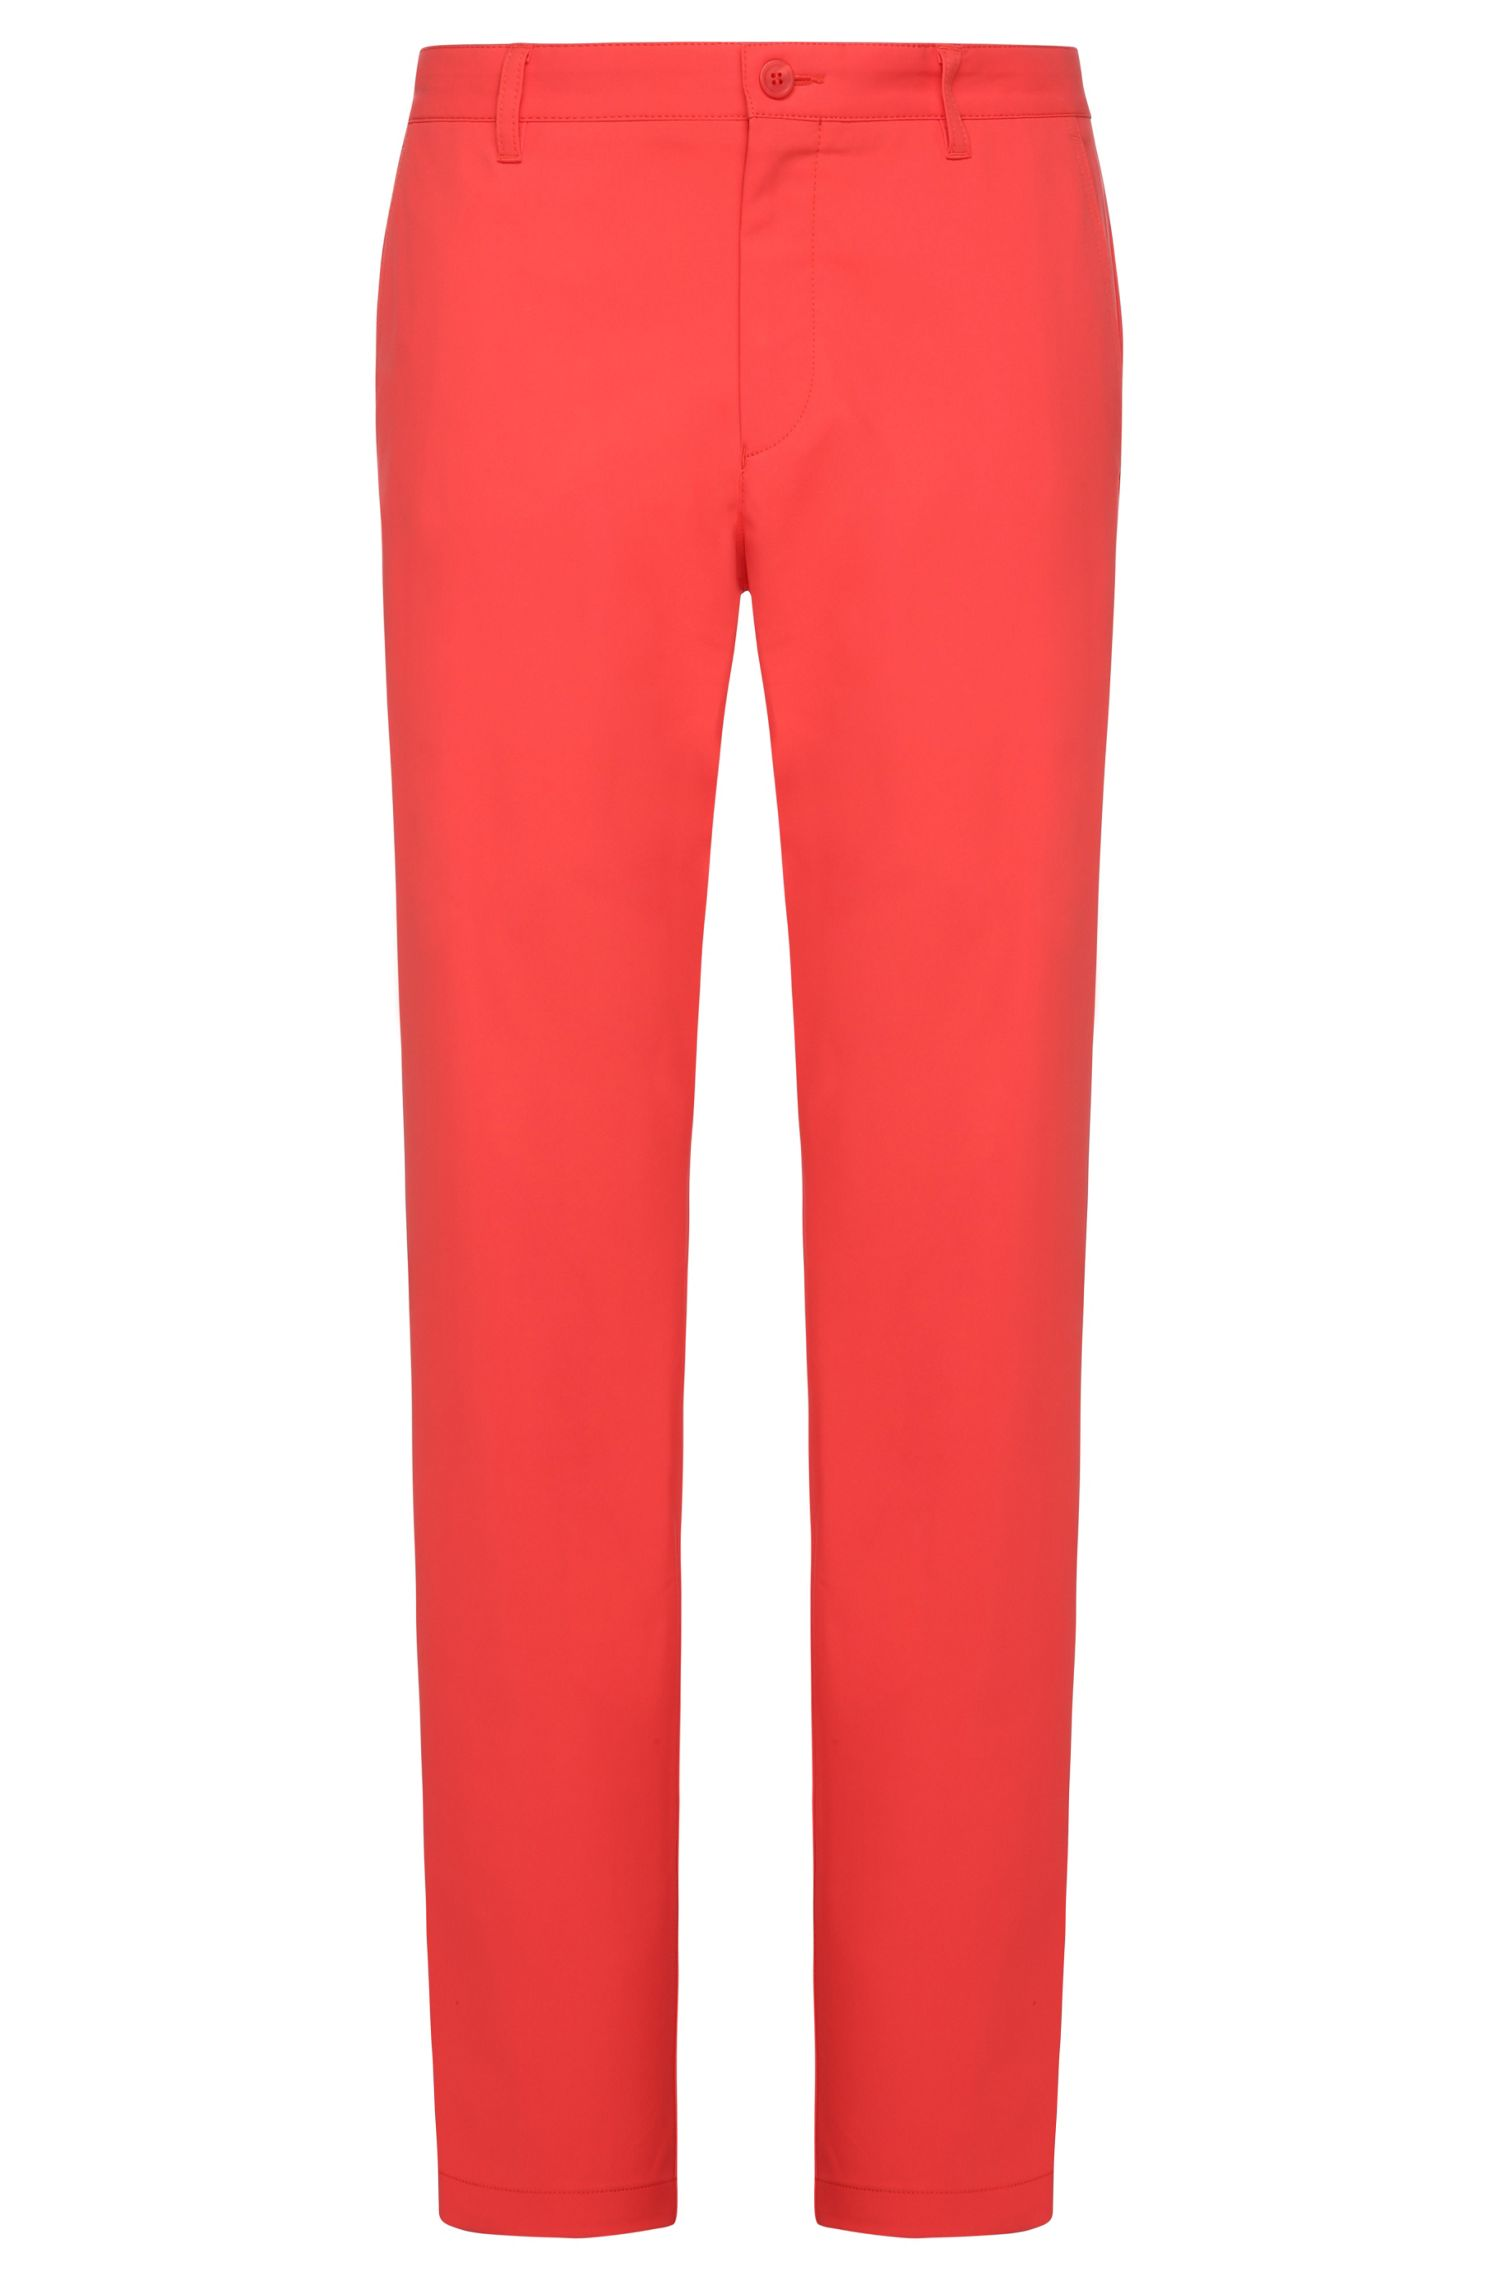 CoolMax Performance Golf Pants, Slim Fit | Hakan, Open Red